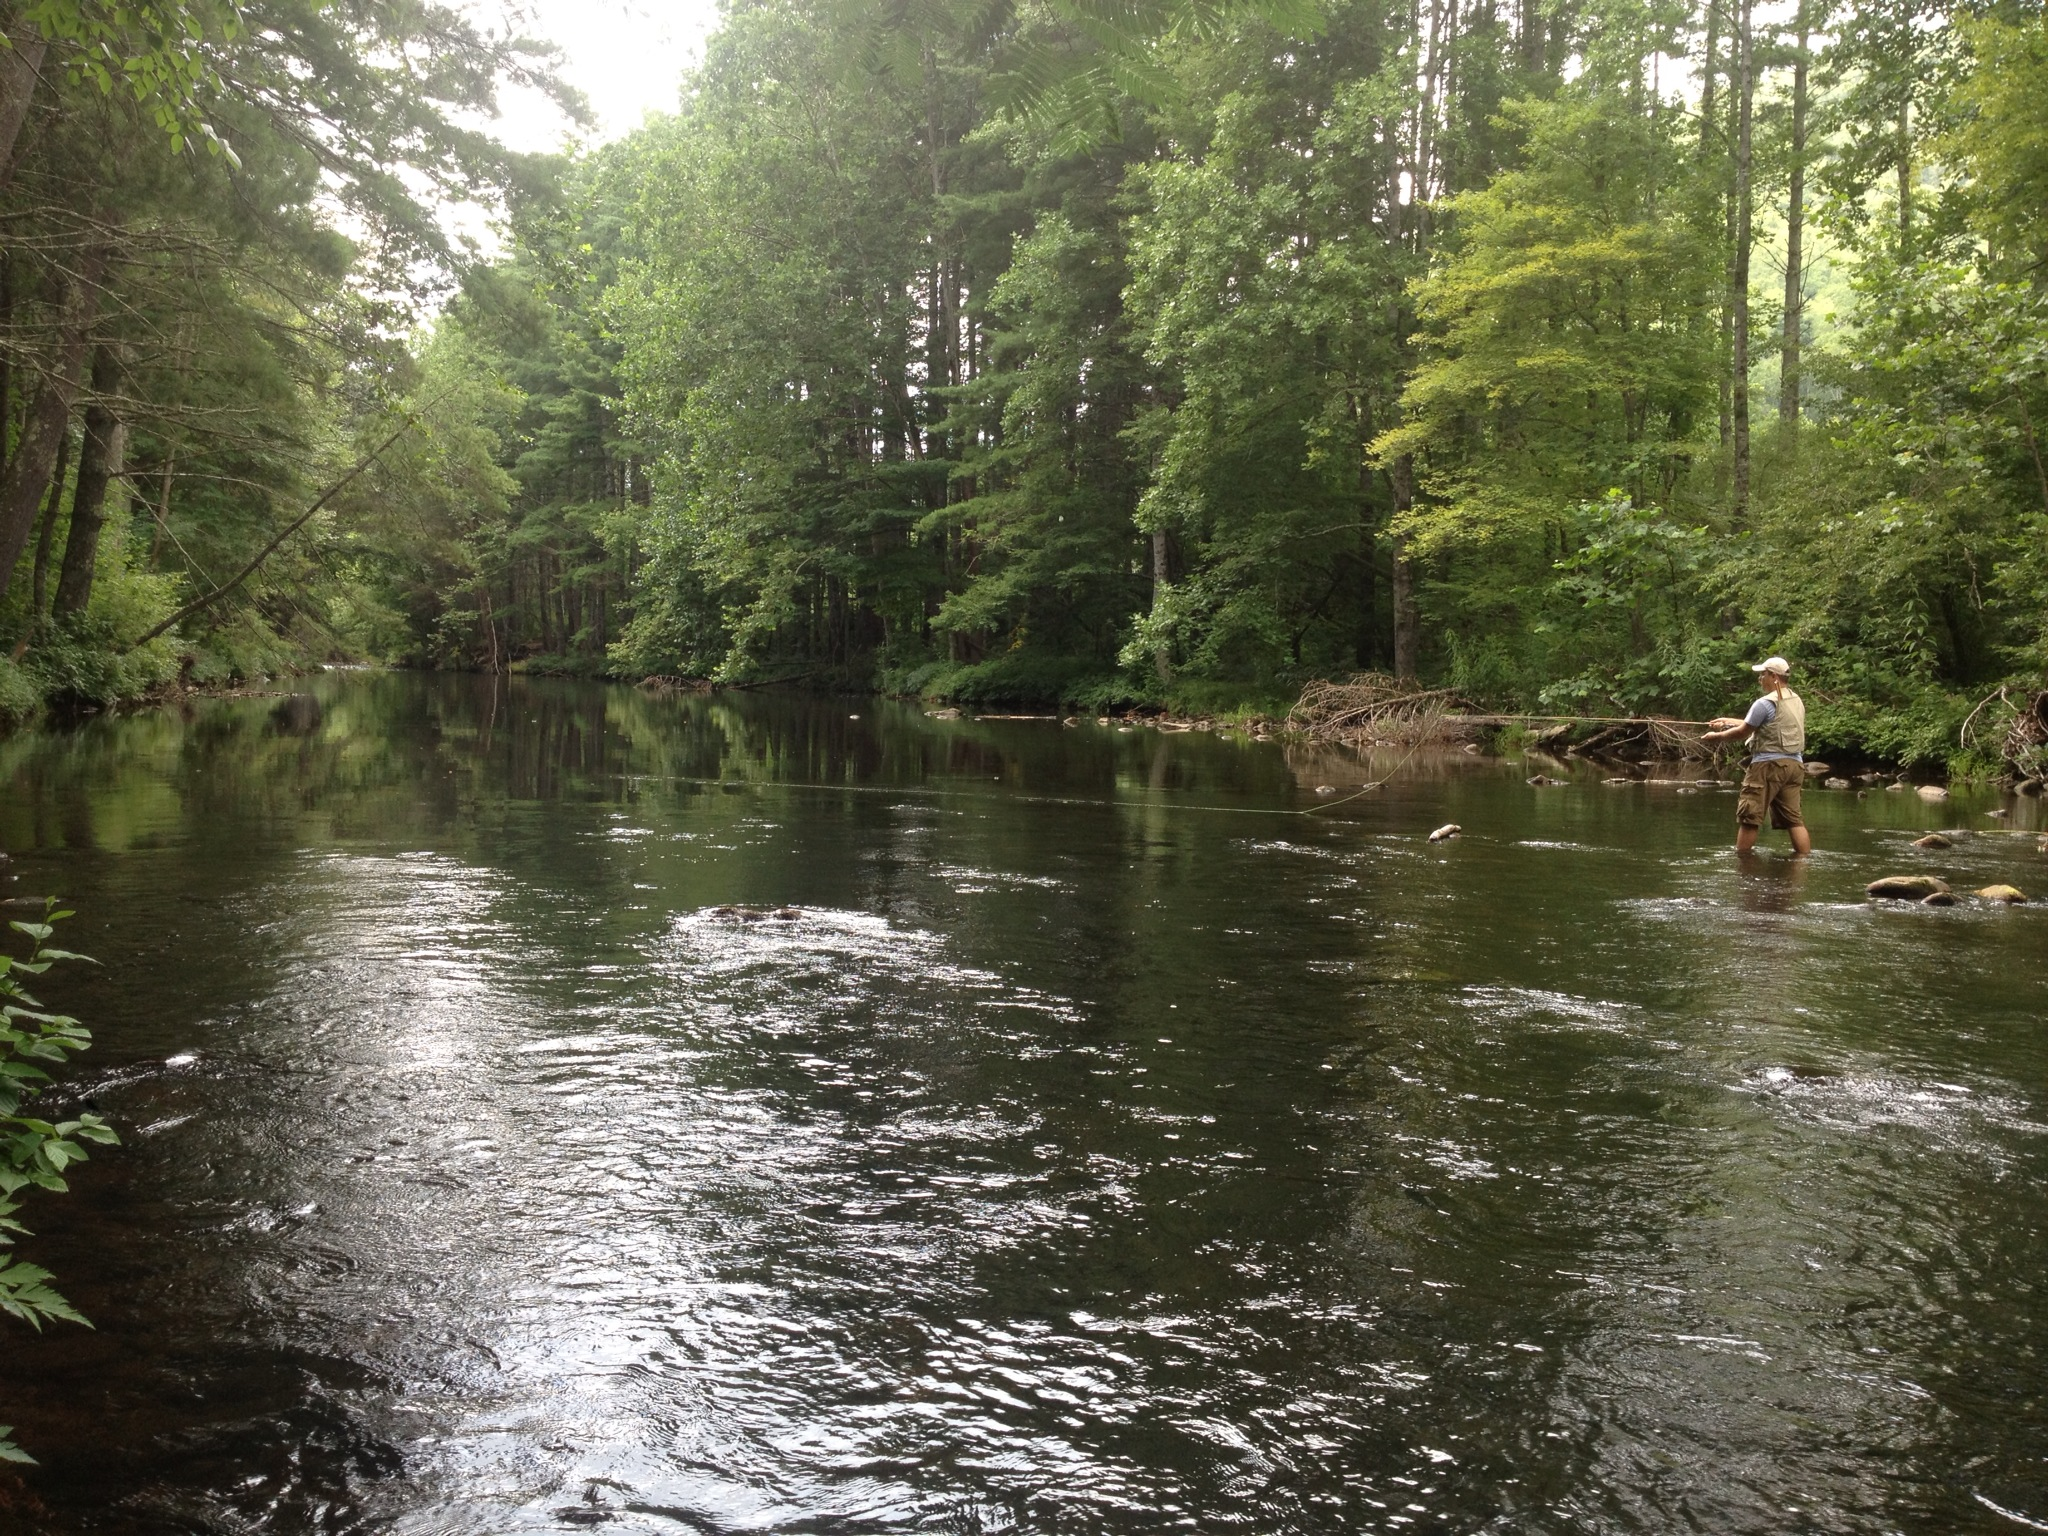 Fly fishing the pigeon river near asheville nc for Nc fish and wildlife